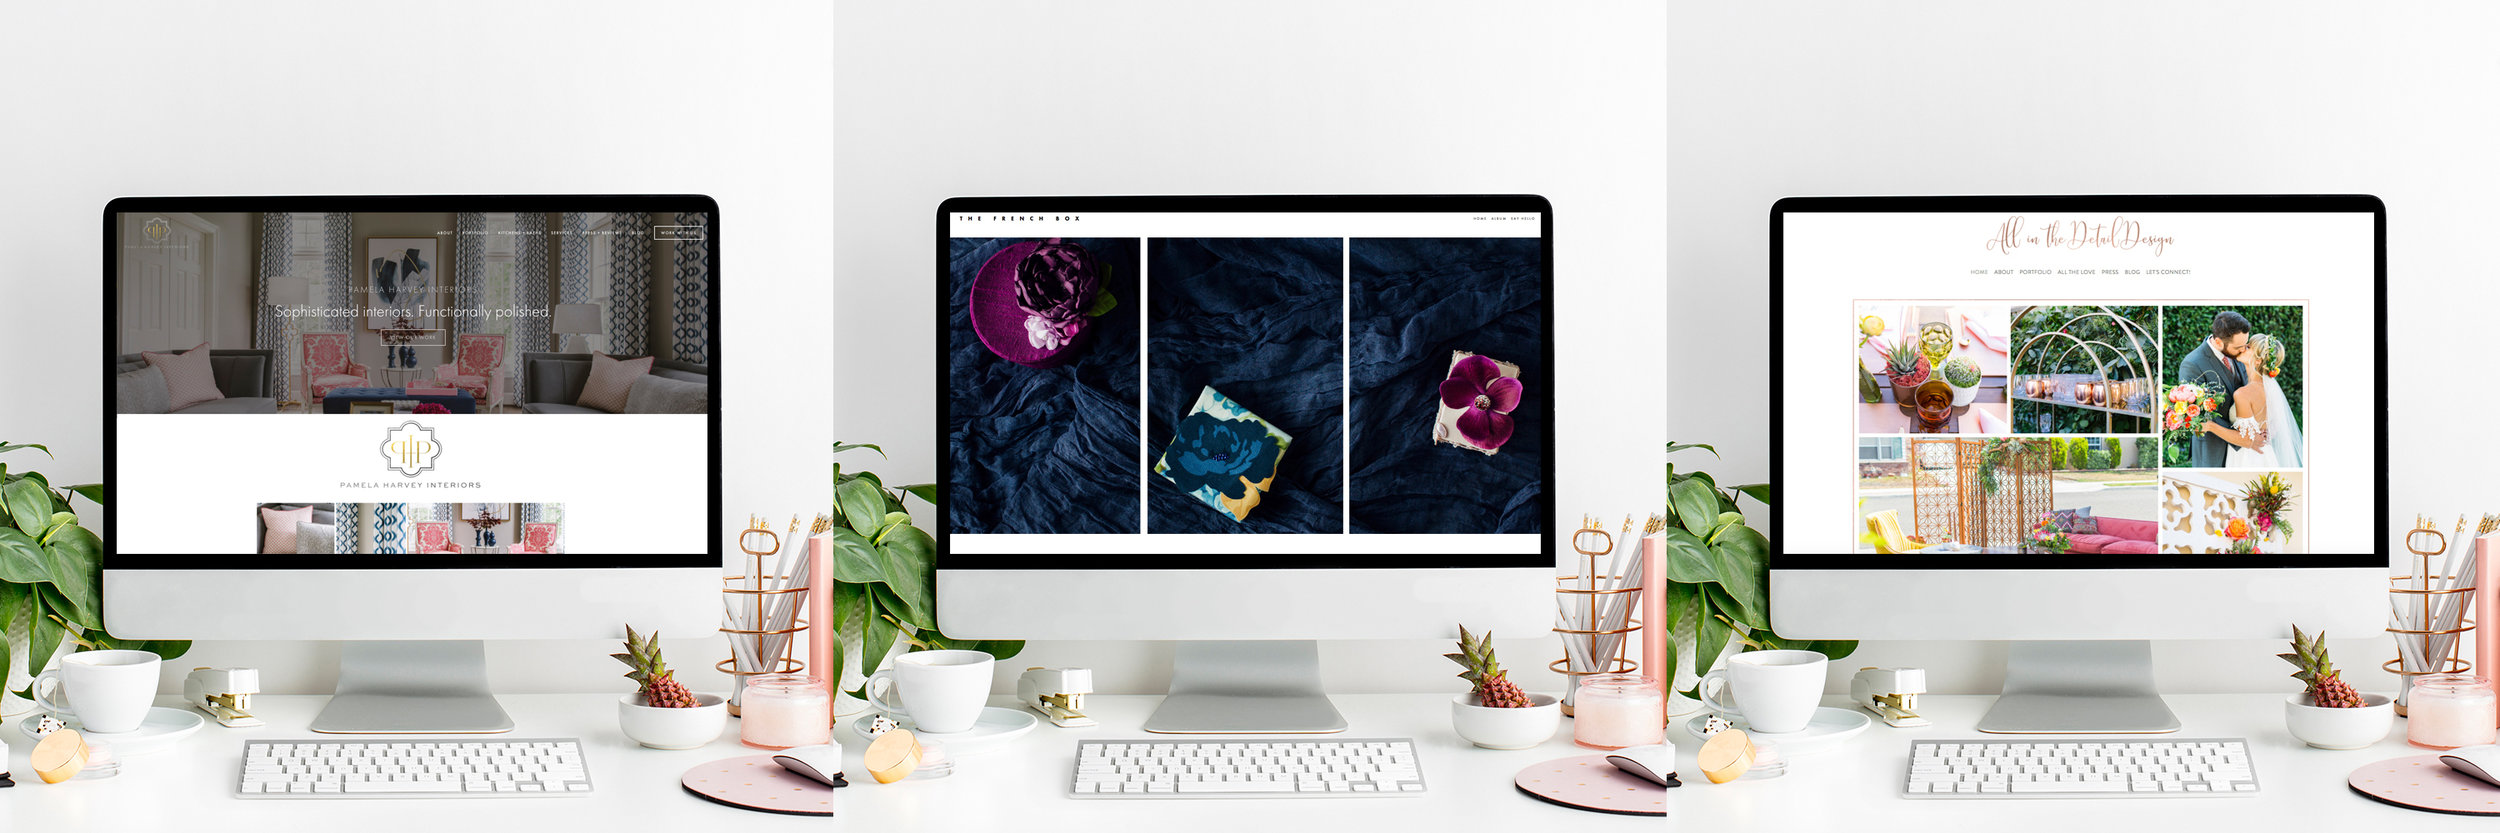 The Editor's Touch | Web Design for Business Owners